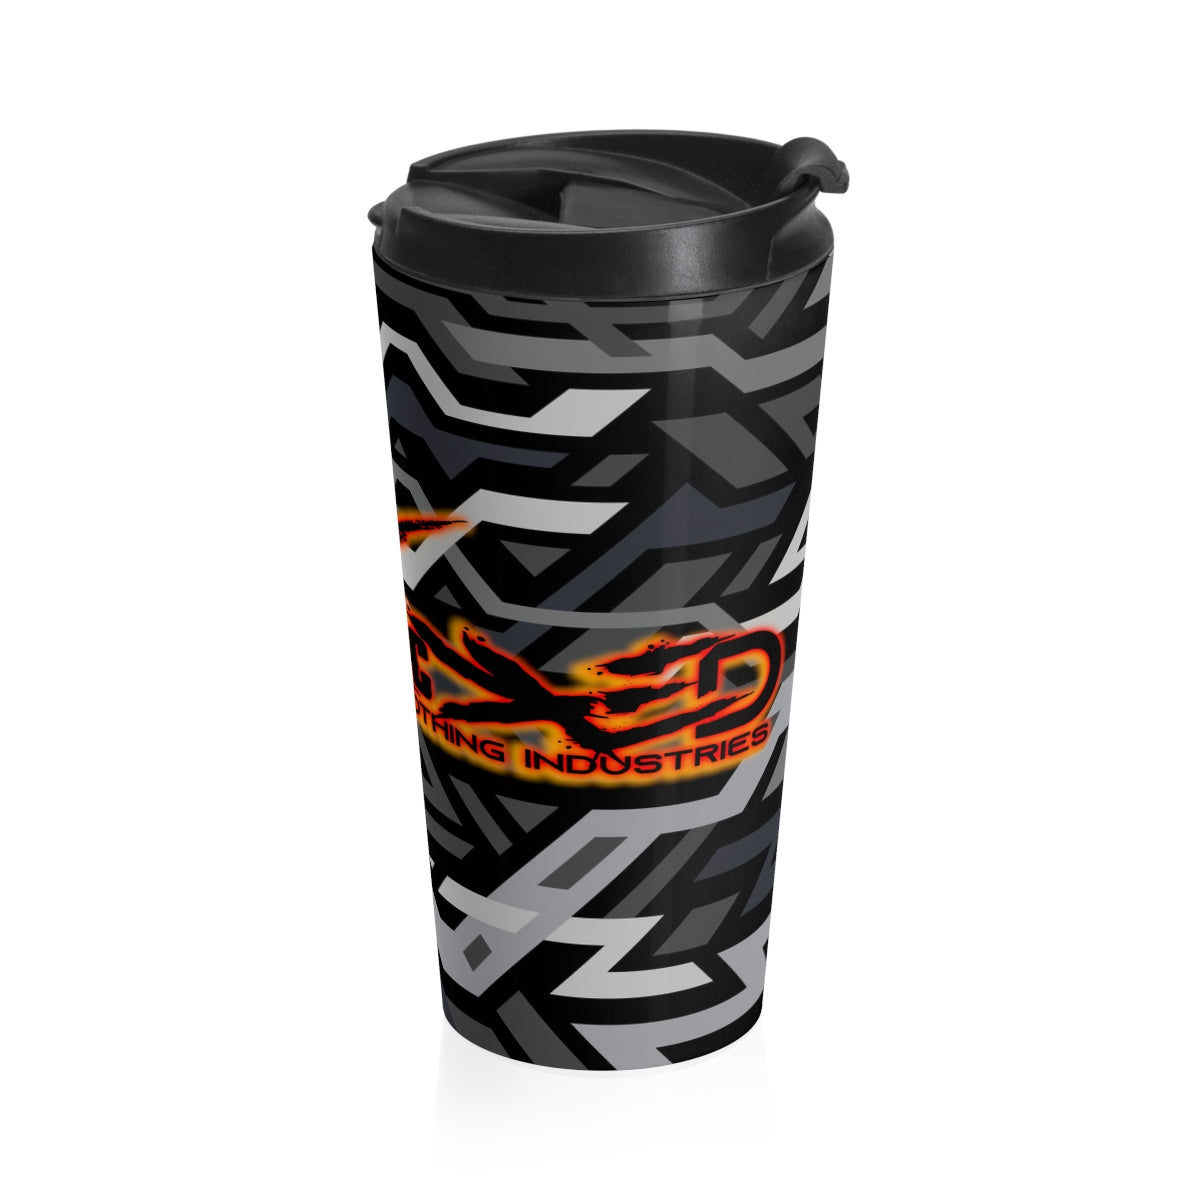 Razor / Stainless Steel Travel Mug